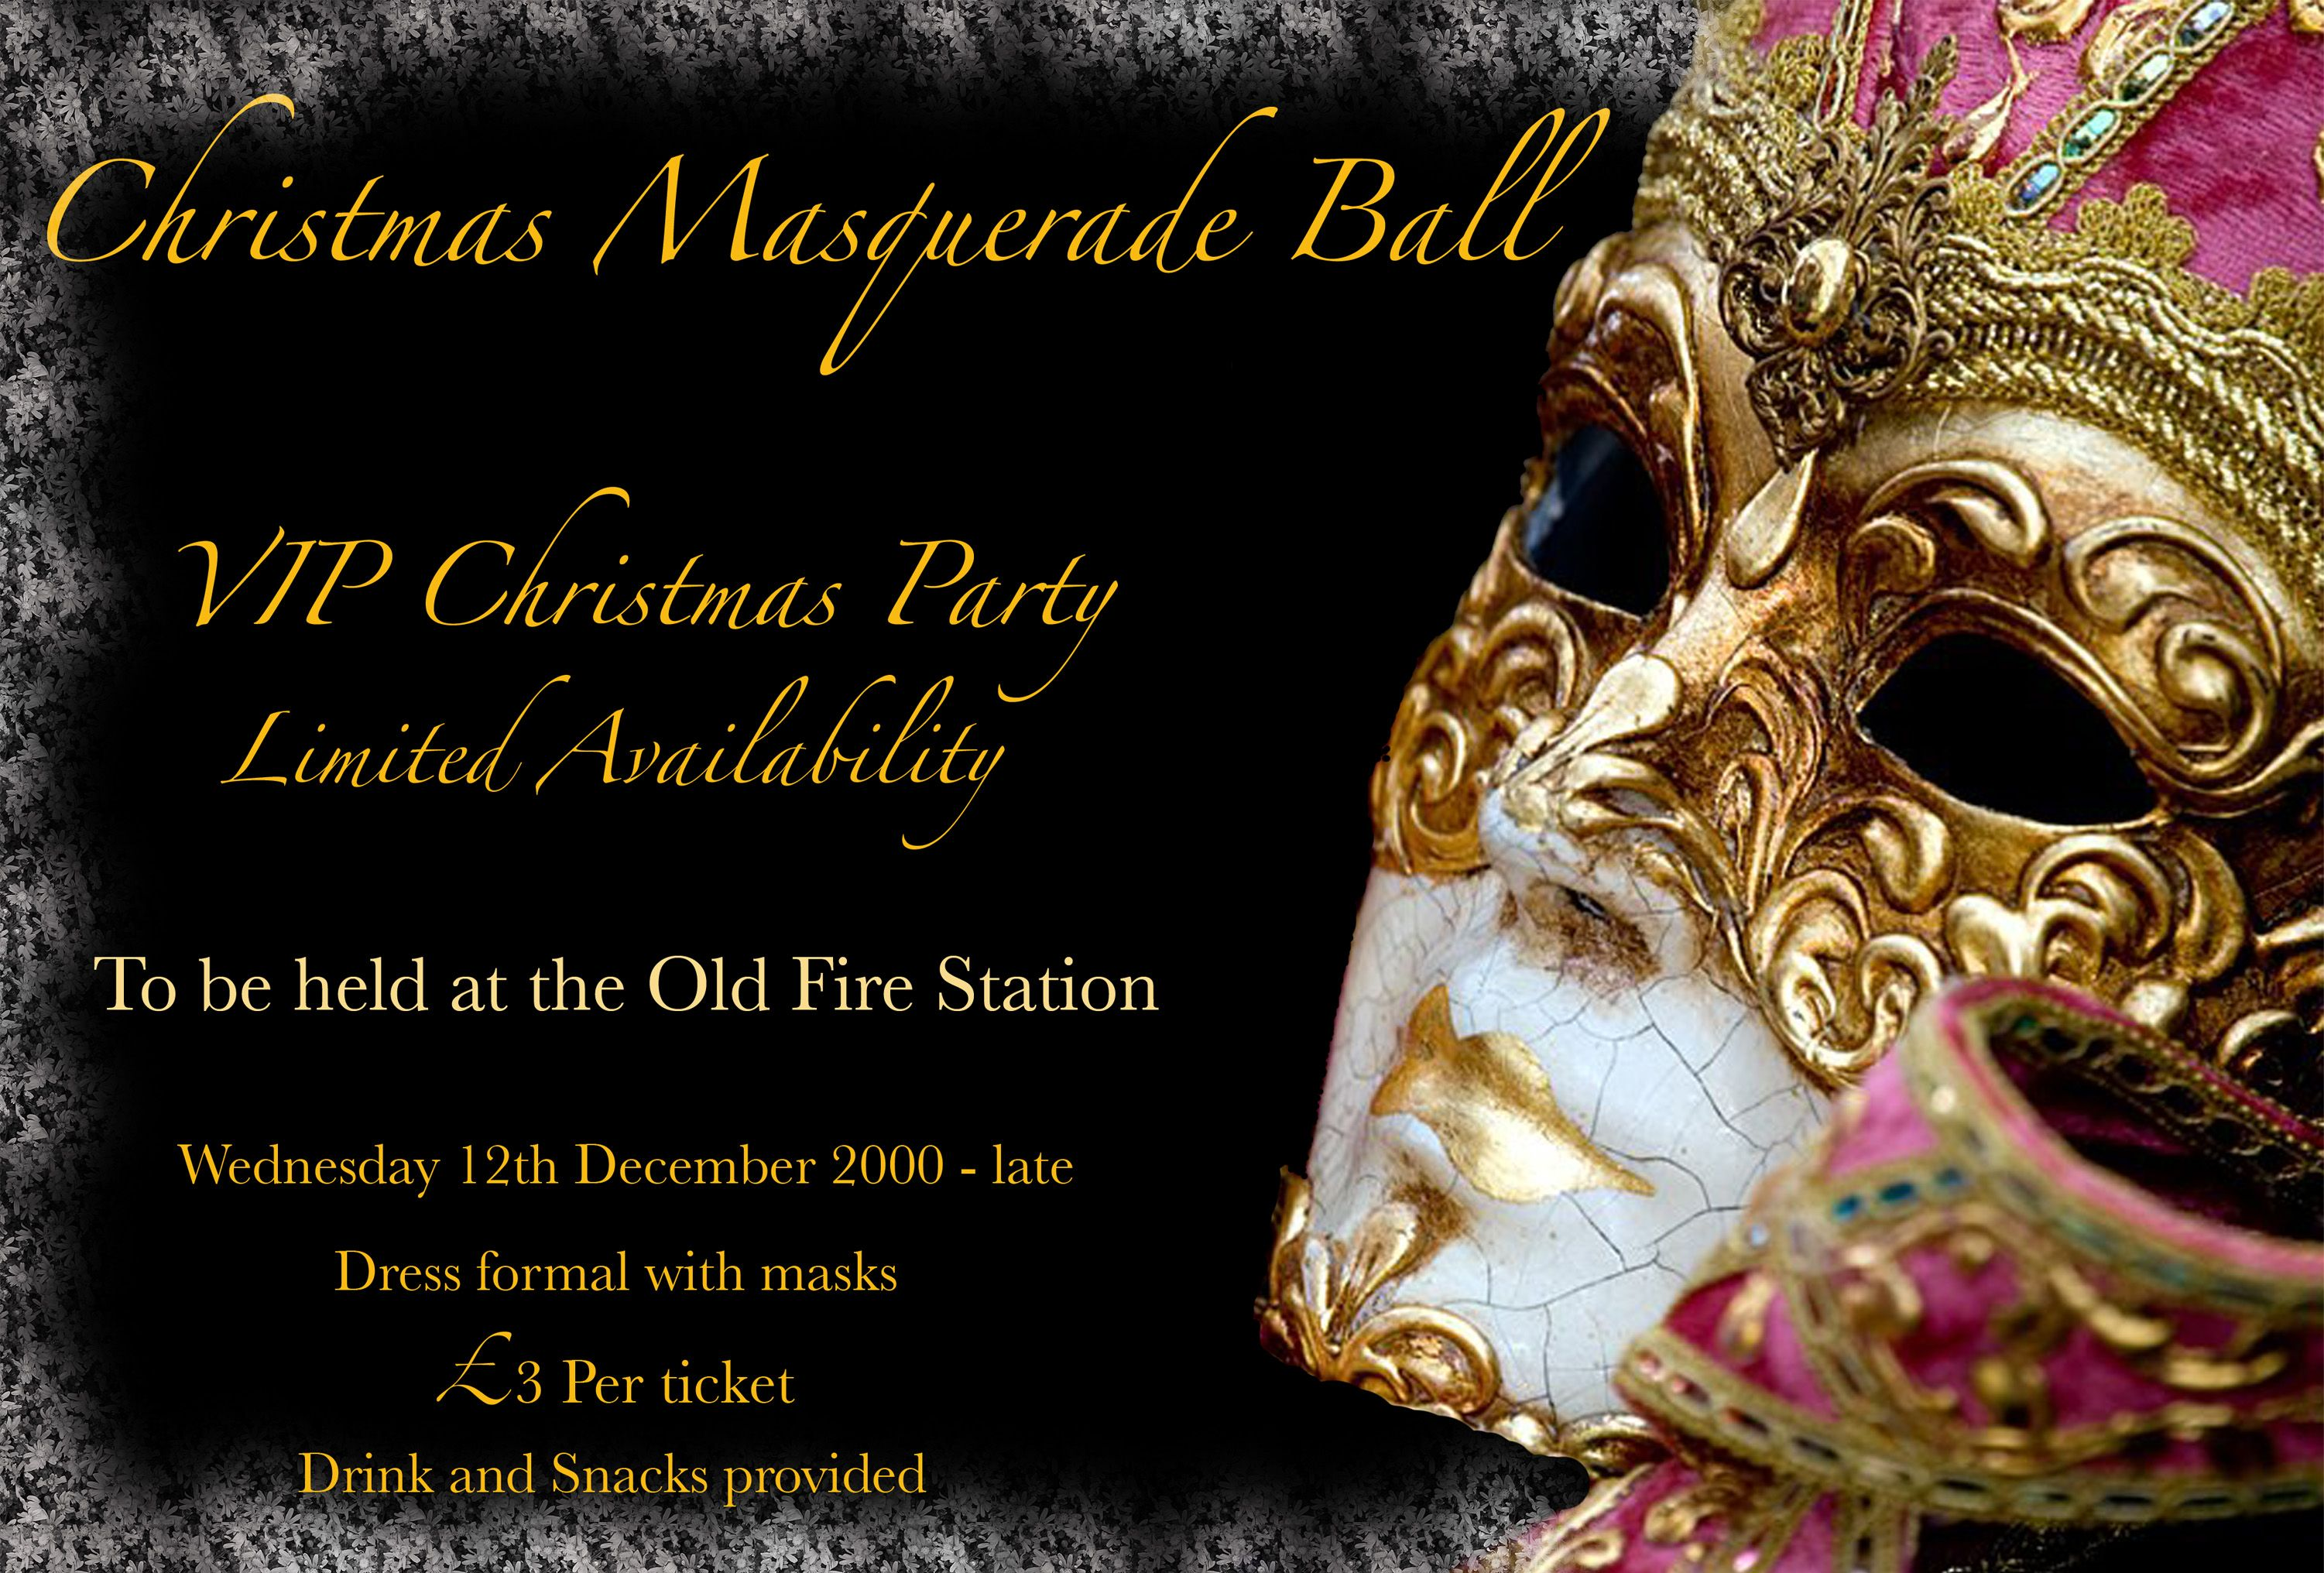 Ordinary Masquerade Christmas Party Ideas Part - 8: Masquarade Party Ideas | Masquerade Ball Christmas Party - Created In  Photoshop.